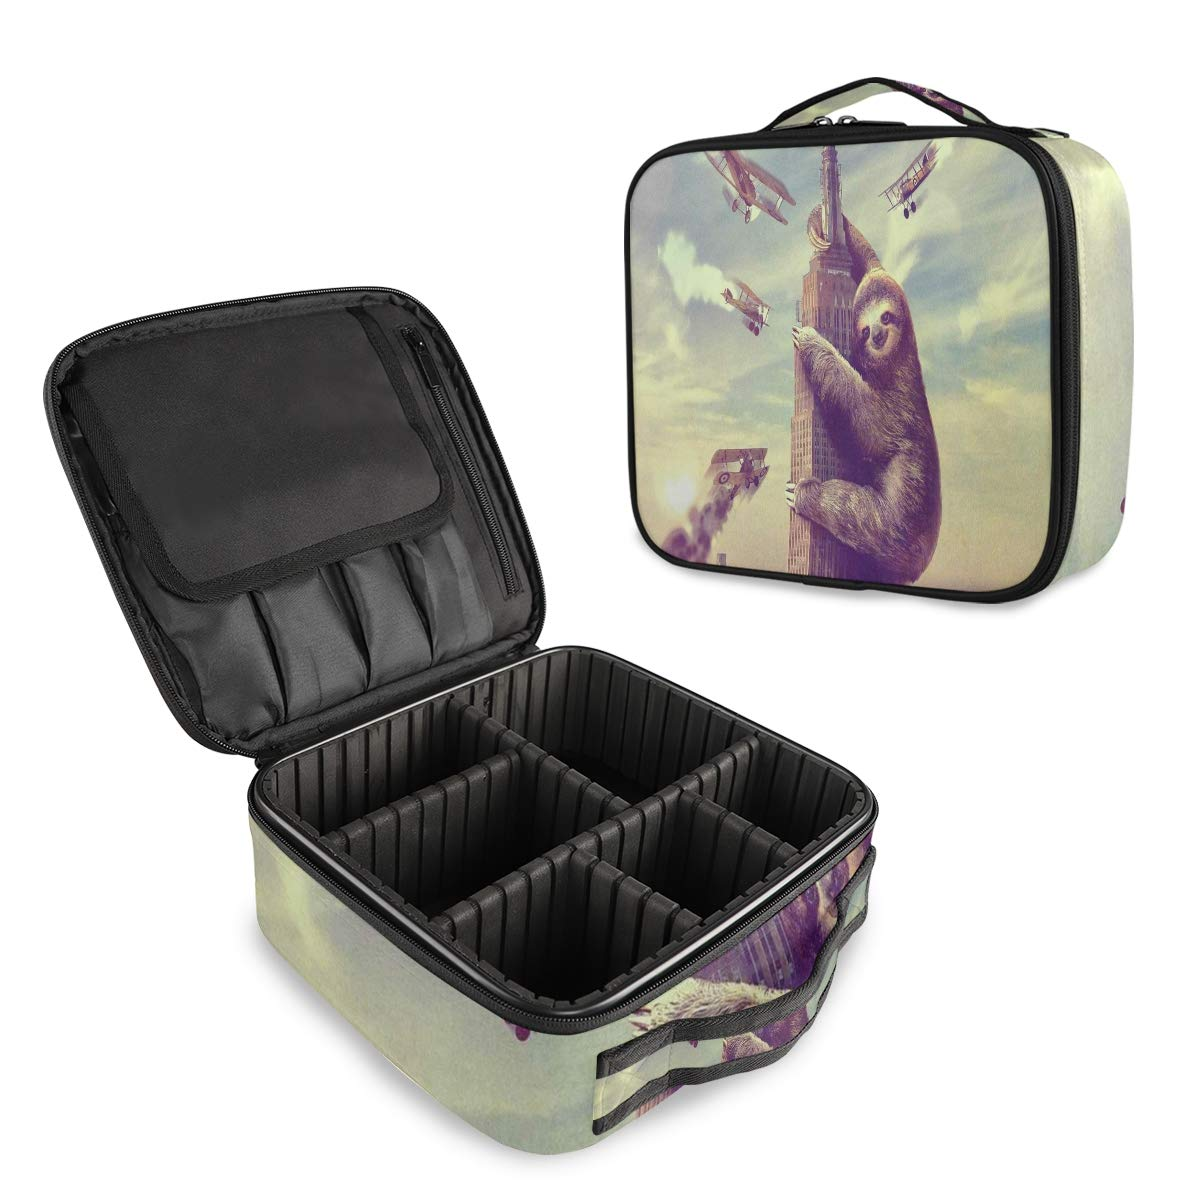 Funny Animal Sloth Climbs The BuildingTravel Makeup Case Cosmetic Bag Box Professional Train Case Large Make Up Storage Organizer with Removable Dividers Brush Section for Women Girls Hard Shell